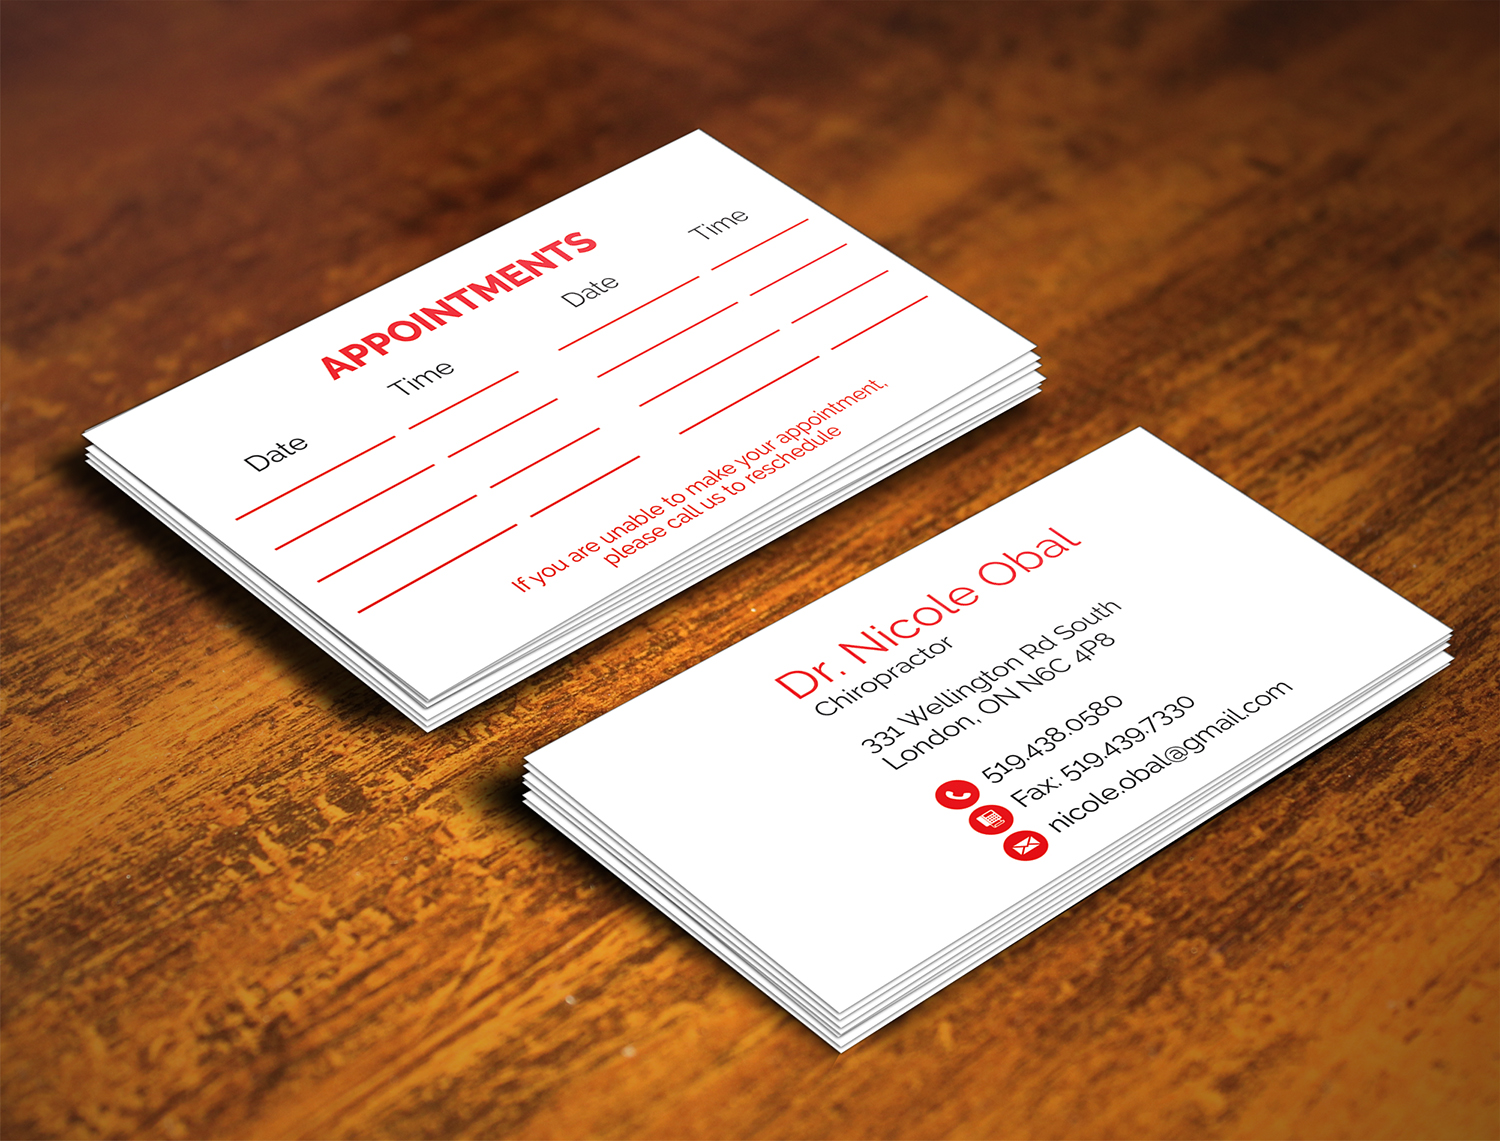 Modern professional medical business card design for a company by business card design by alhemique1 for this project design 10939818 reheart Image collections